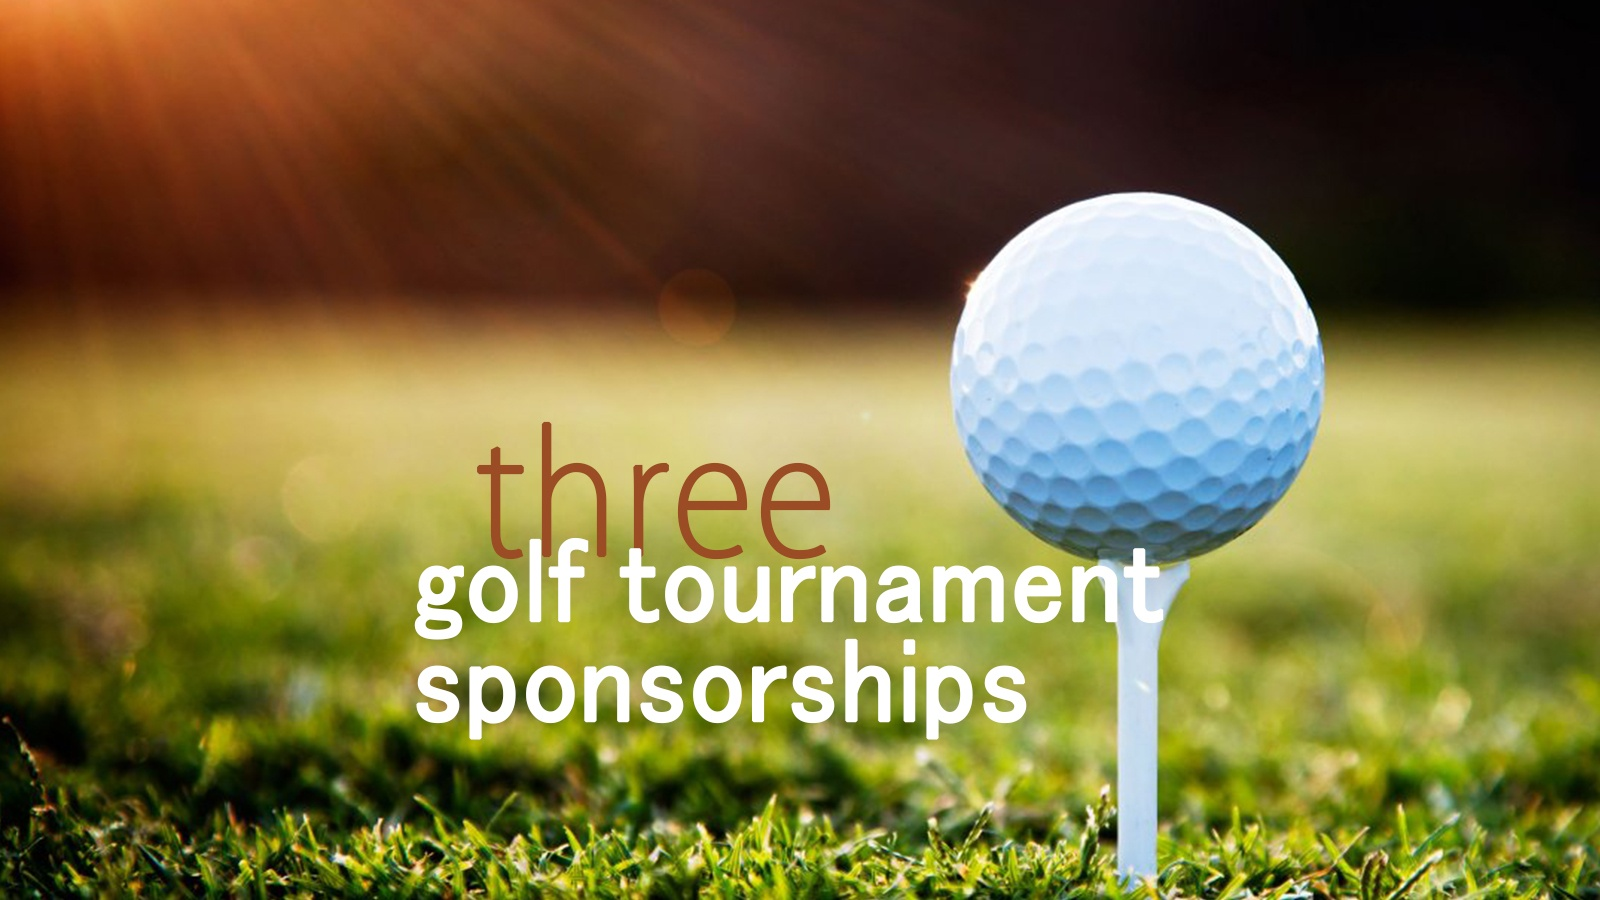 golf sponsorships